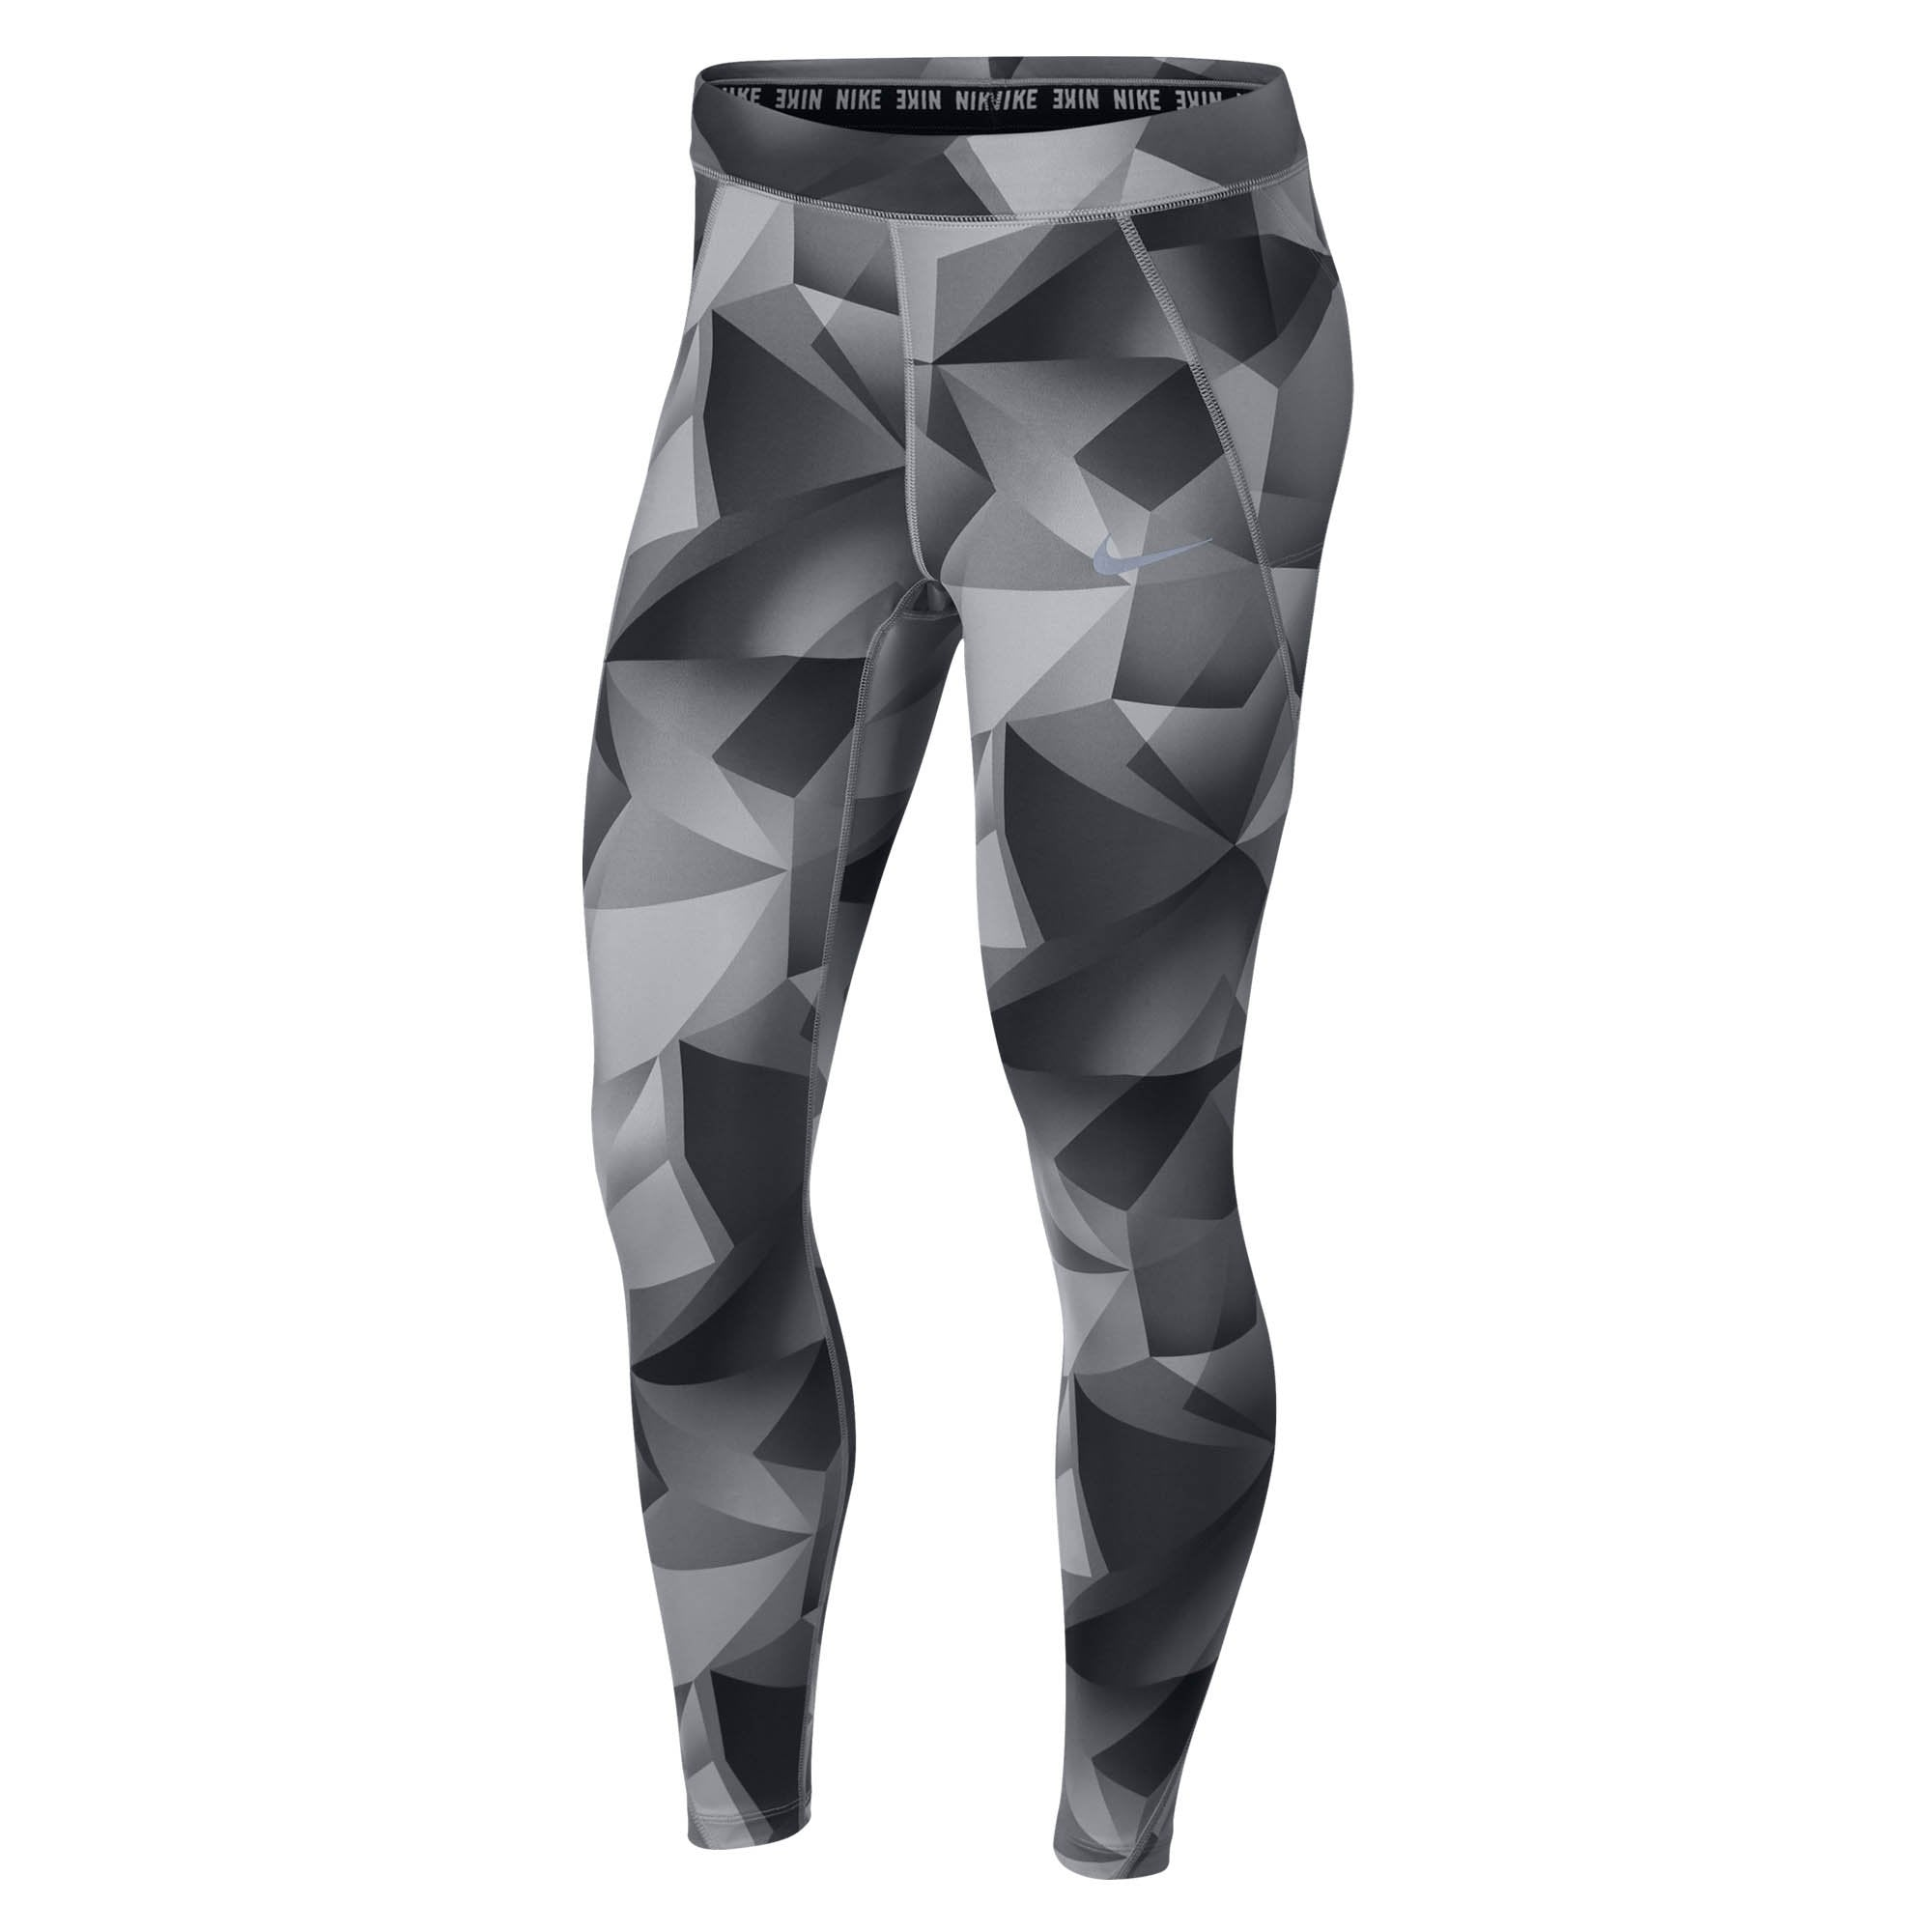 8962552eb33d0 Buy Nike Women Speed 7/8 Tights, Black Online in Singapore | Royal Sporting  House